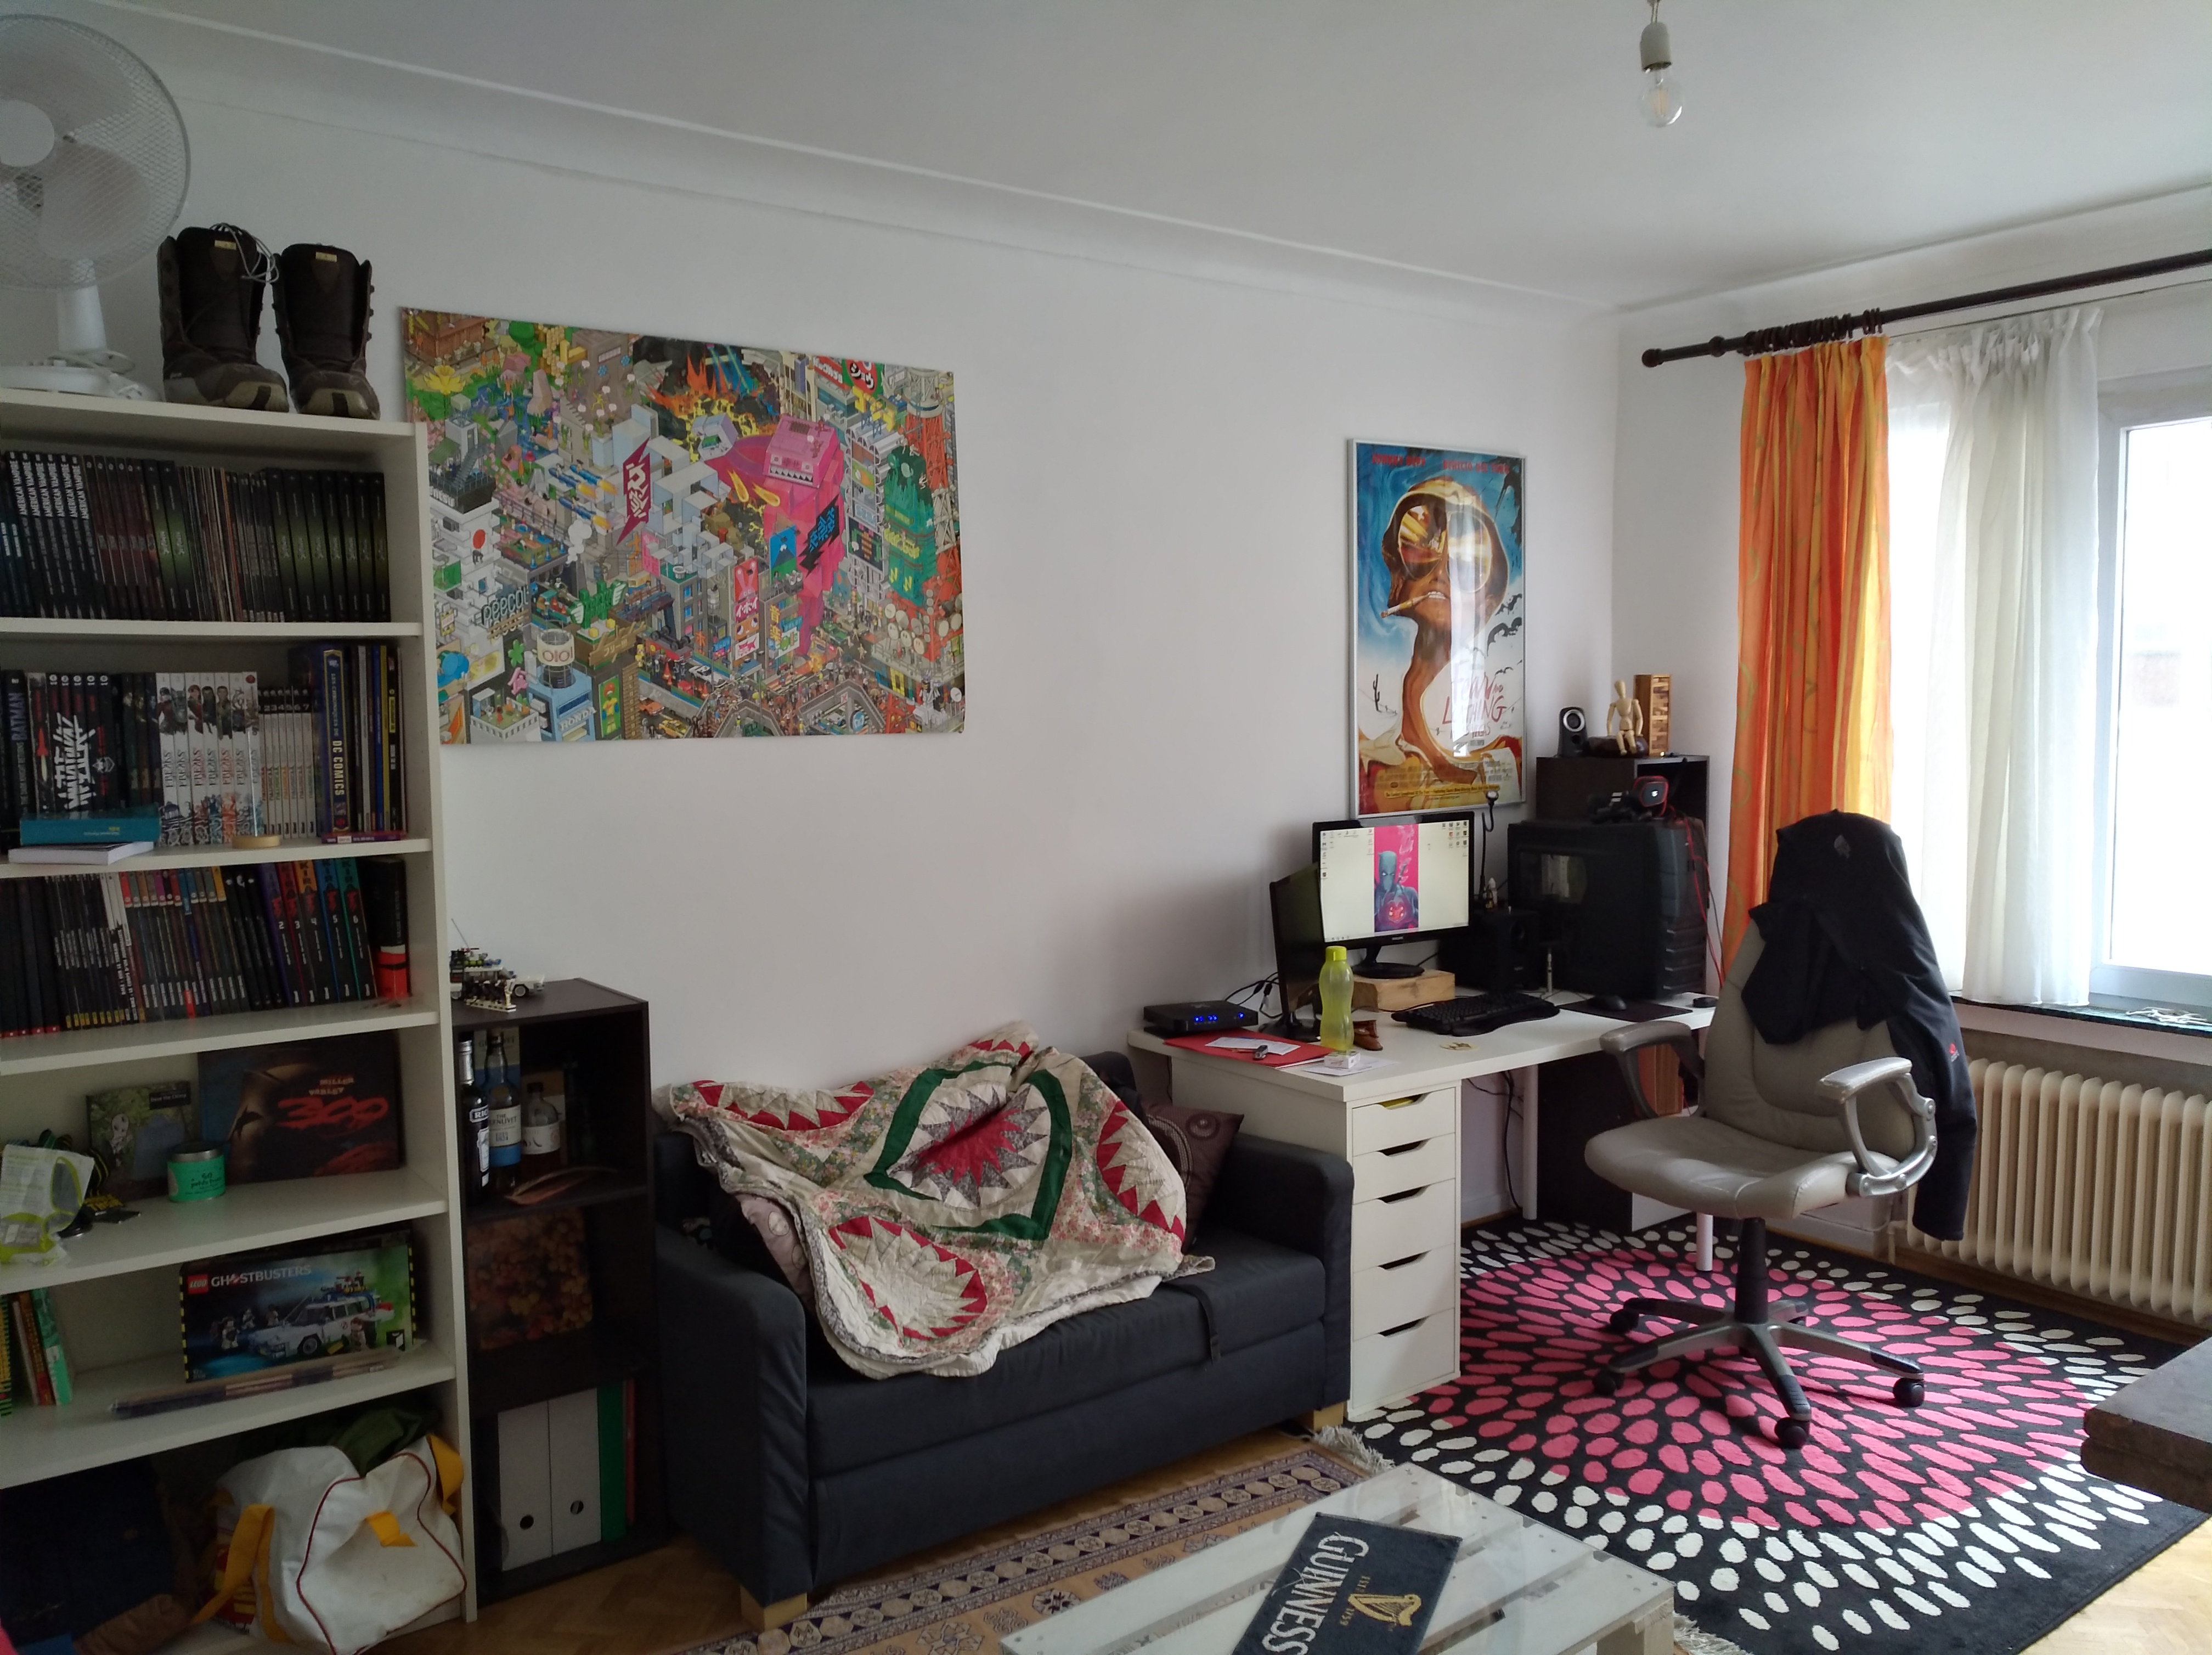 Appartement une chambre louer 1040 etterbeek immo for Chambre a louer particulier